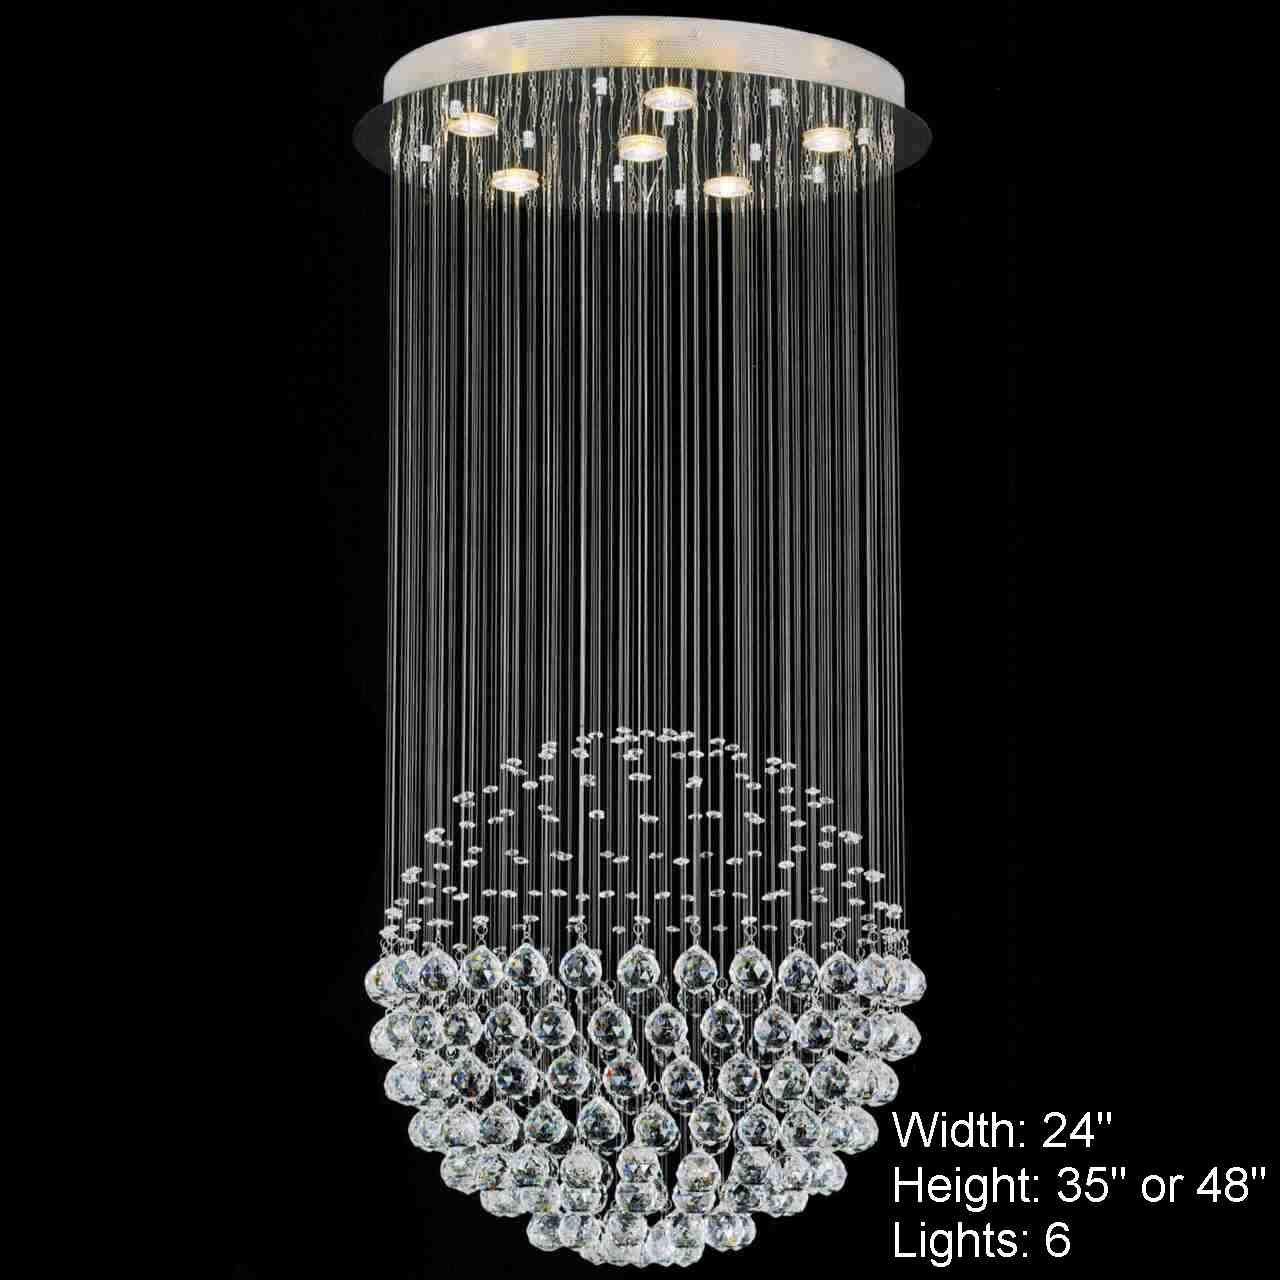 Brizzo lighting stores sphere modern crystal chandelier large picture of sphere modern crystal chandelier large mirror stainless steel base 6 lights aloadofball Images